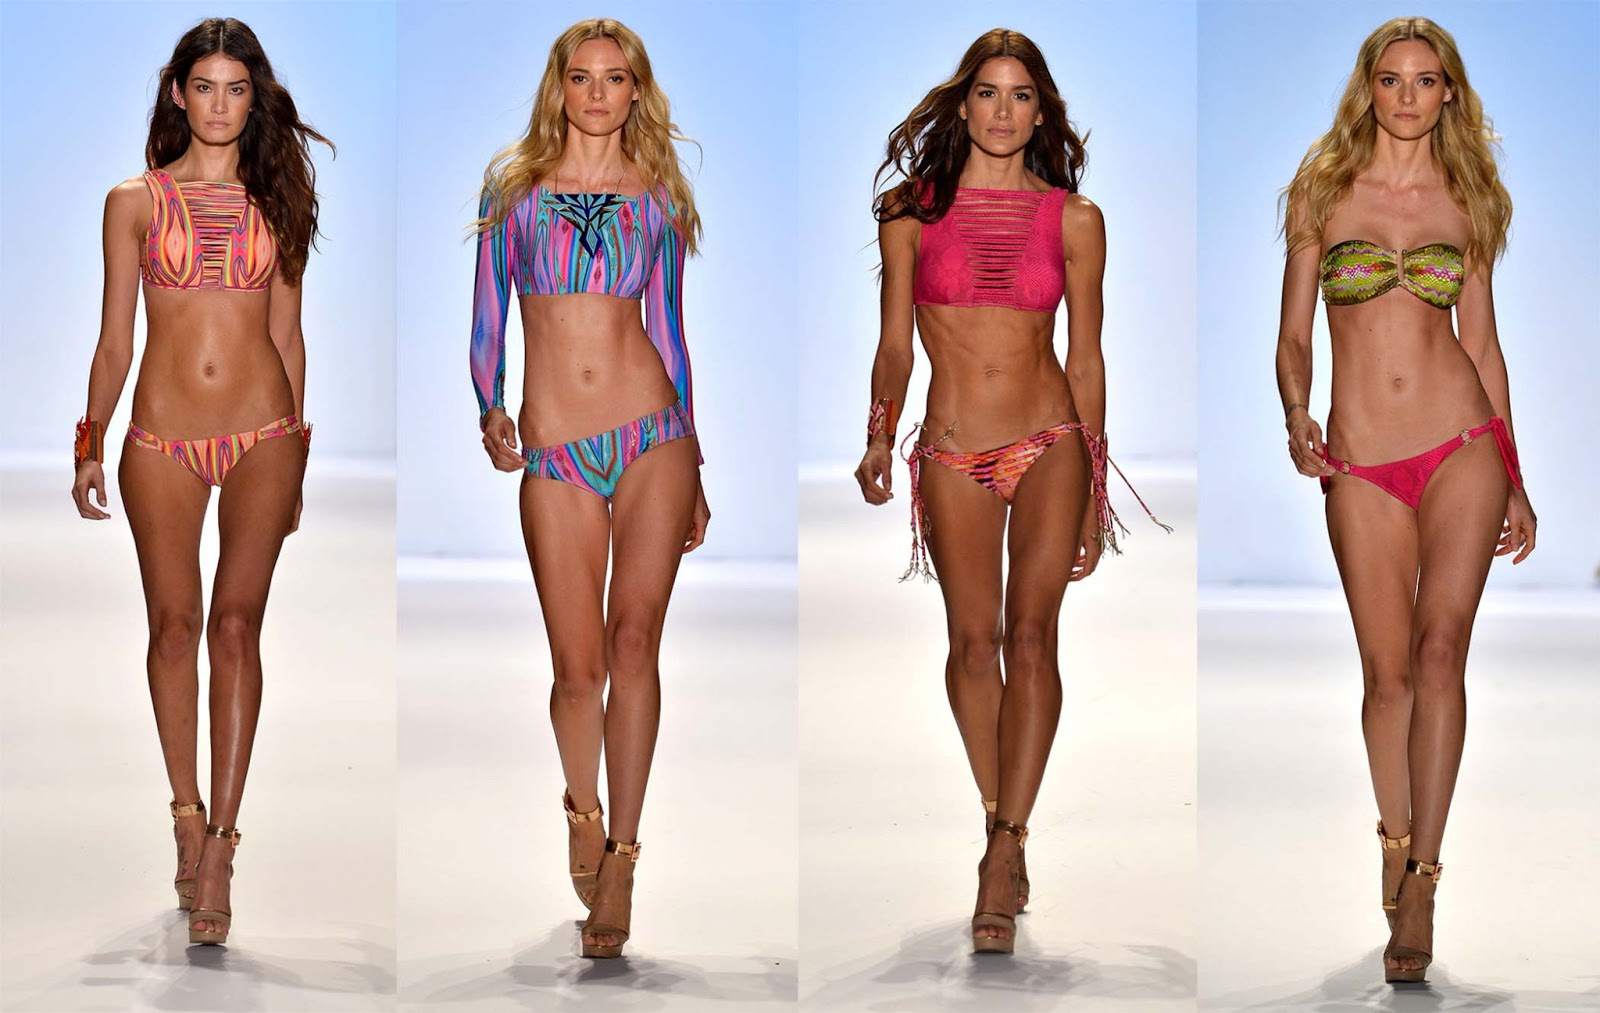 Jun 18, Learn The Seven Swimsuit Slip-ups To Avoid This Summer[/caption] Every woman should be confident enough to wear a swimsuit in public. Any bathing suit blunders you would add to the list? Leave us a comment below. Check out these great swimwear styles and more when you shop for women's bathing suits at .